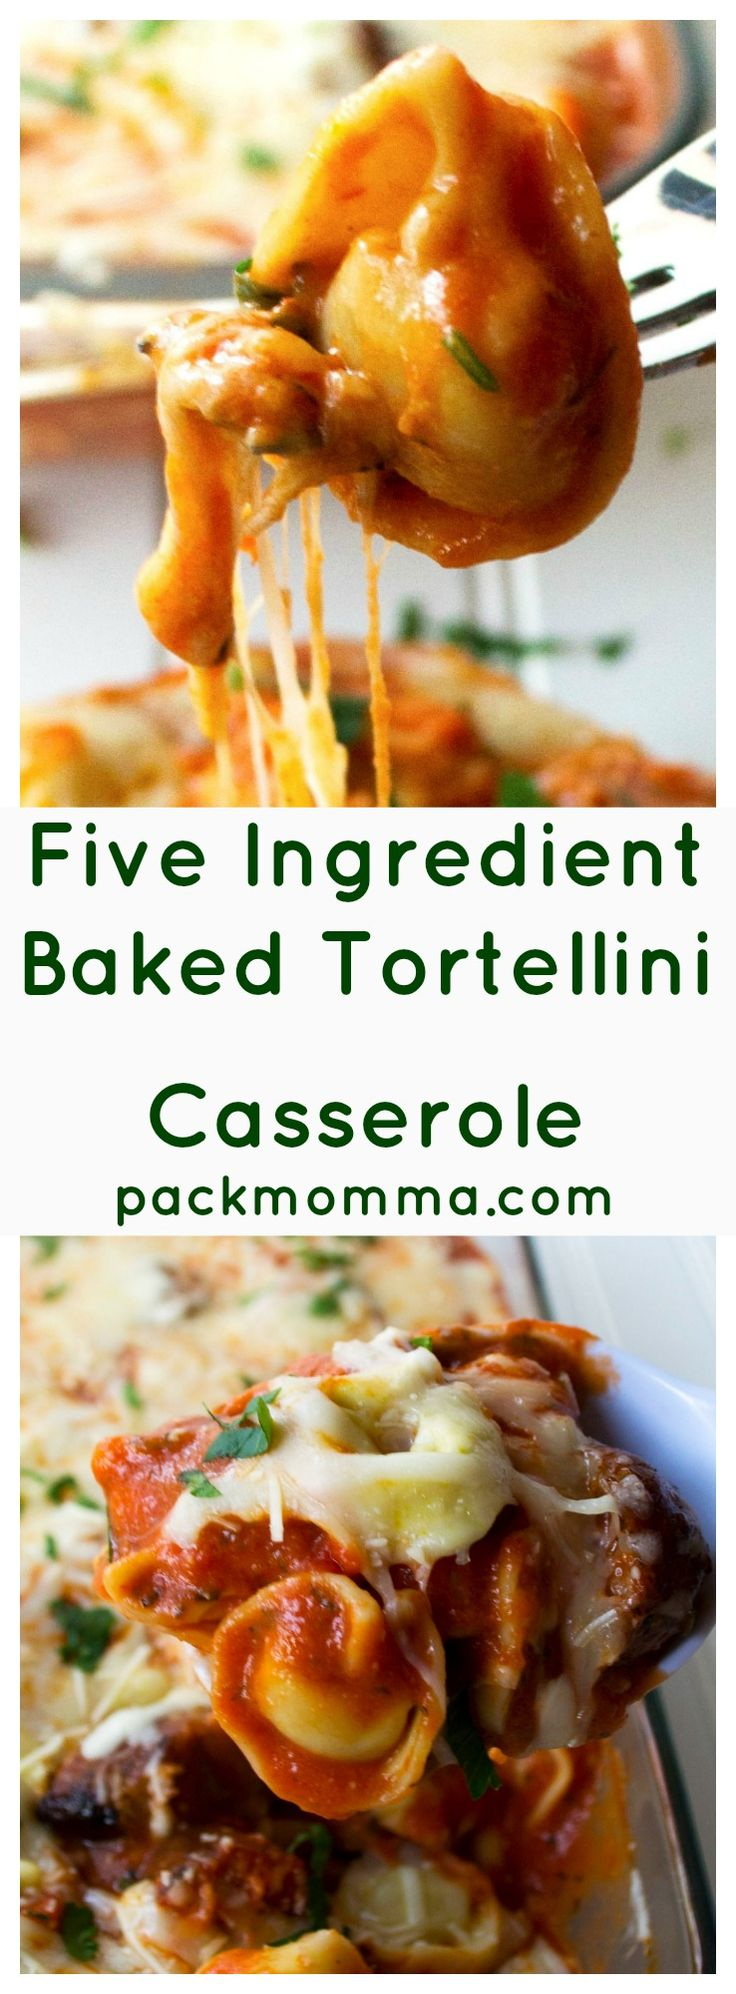 Five Ingredient Baked Tortellini Casserole | This Five Ingredient Baked Tortellini Casserole is the ultimate comfort food. A hot, hearty, delicious meal with only five ingredients and in 30 minutes! | Pack Momma | www.packmomma.com